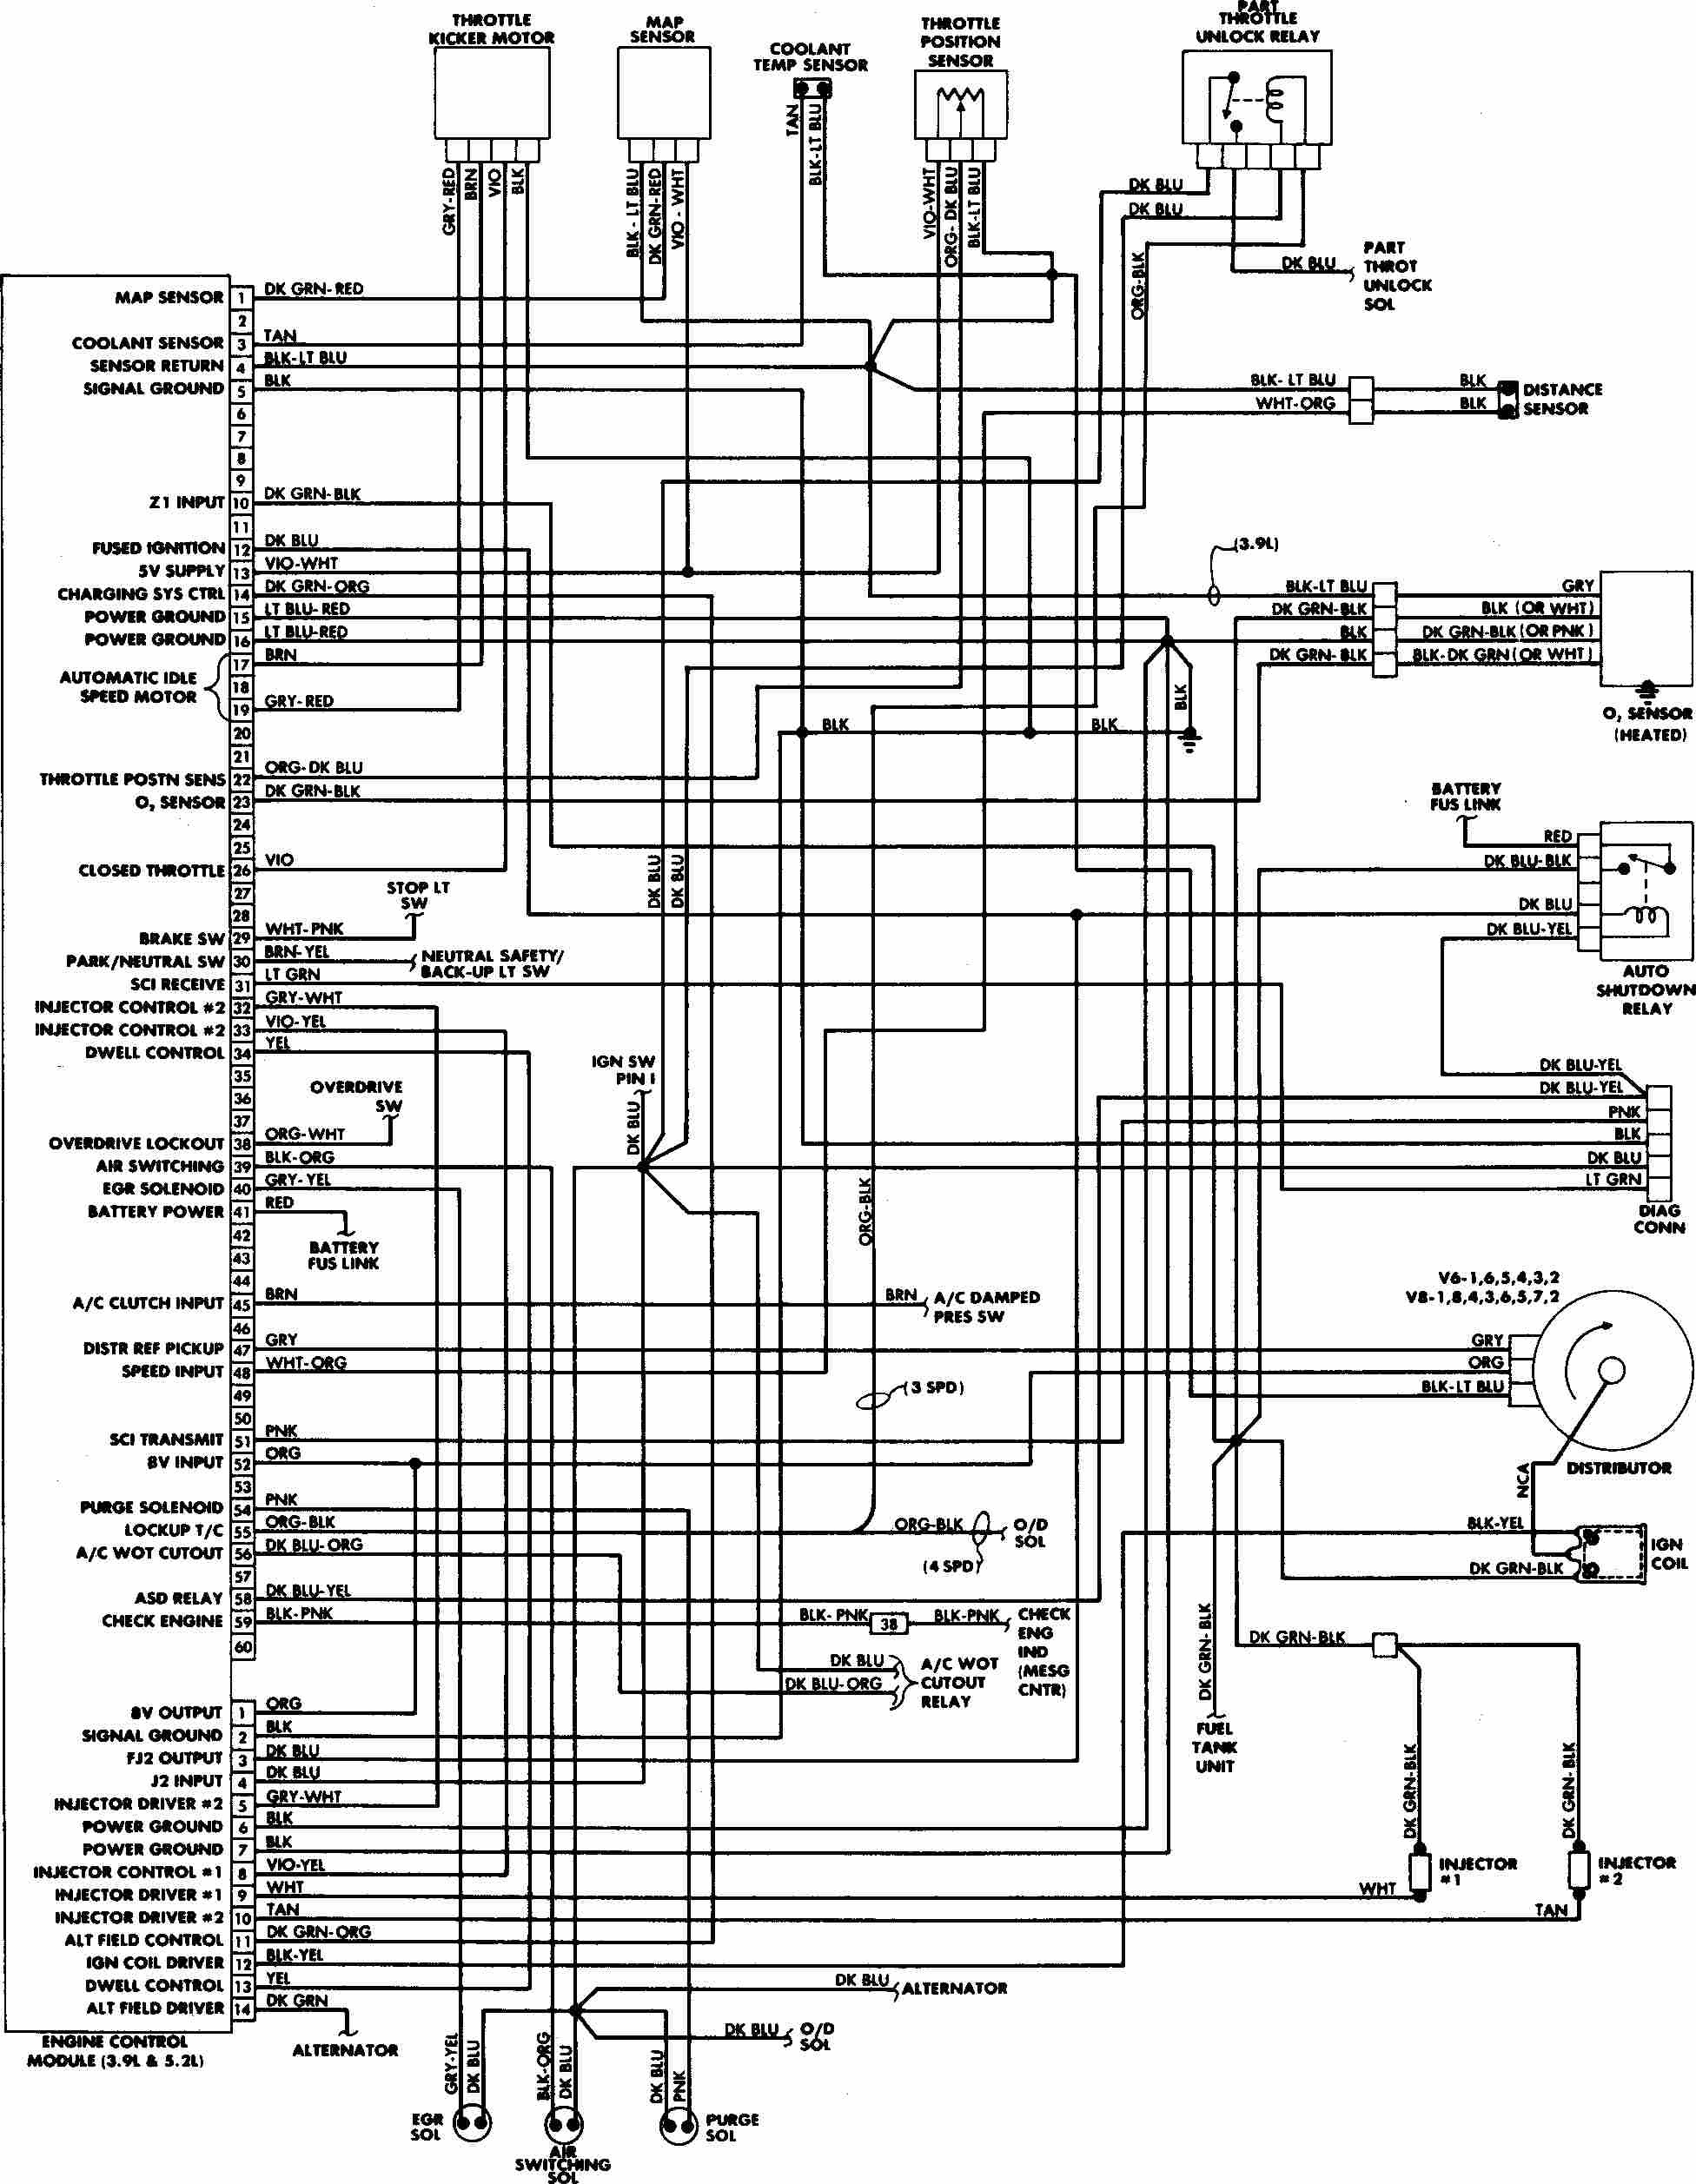 Wiring Diagram For 98 Malibu Free Download